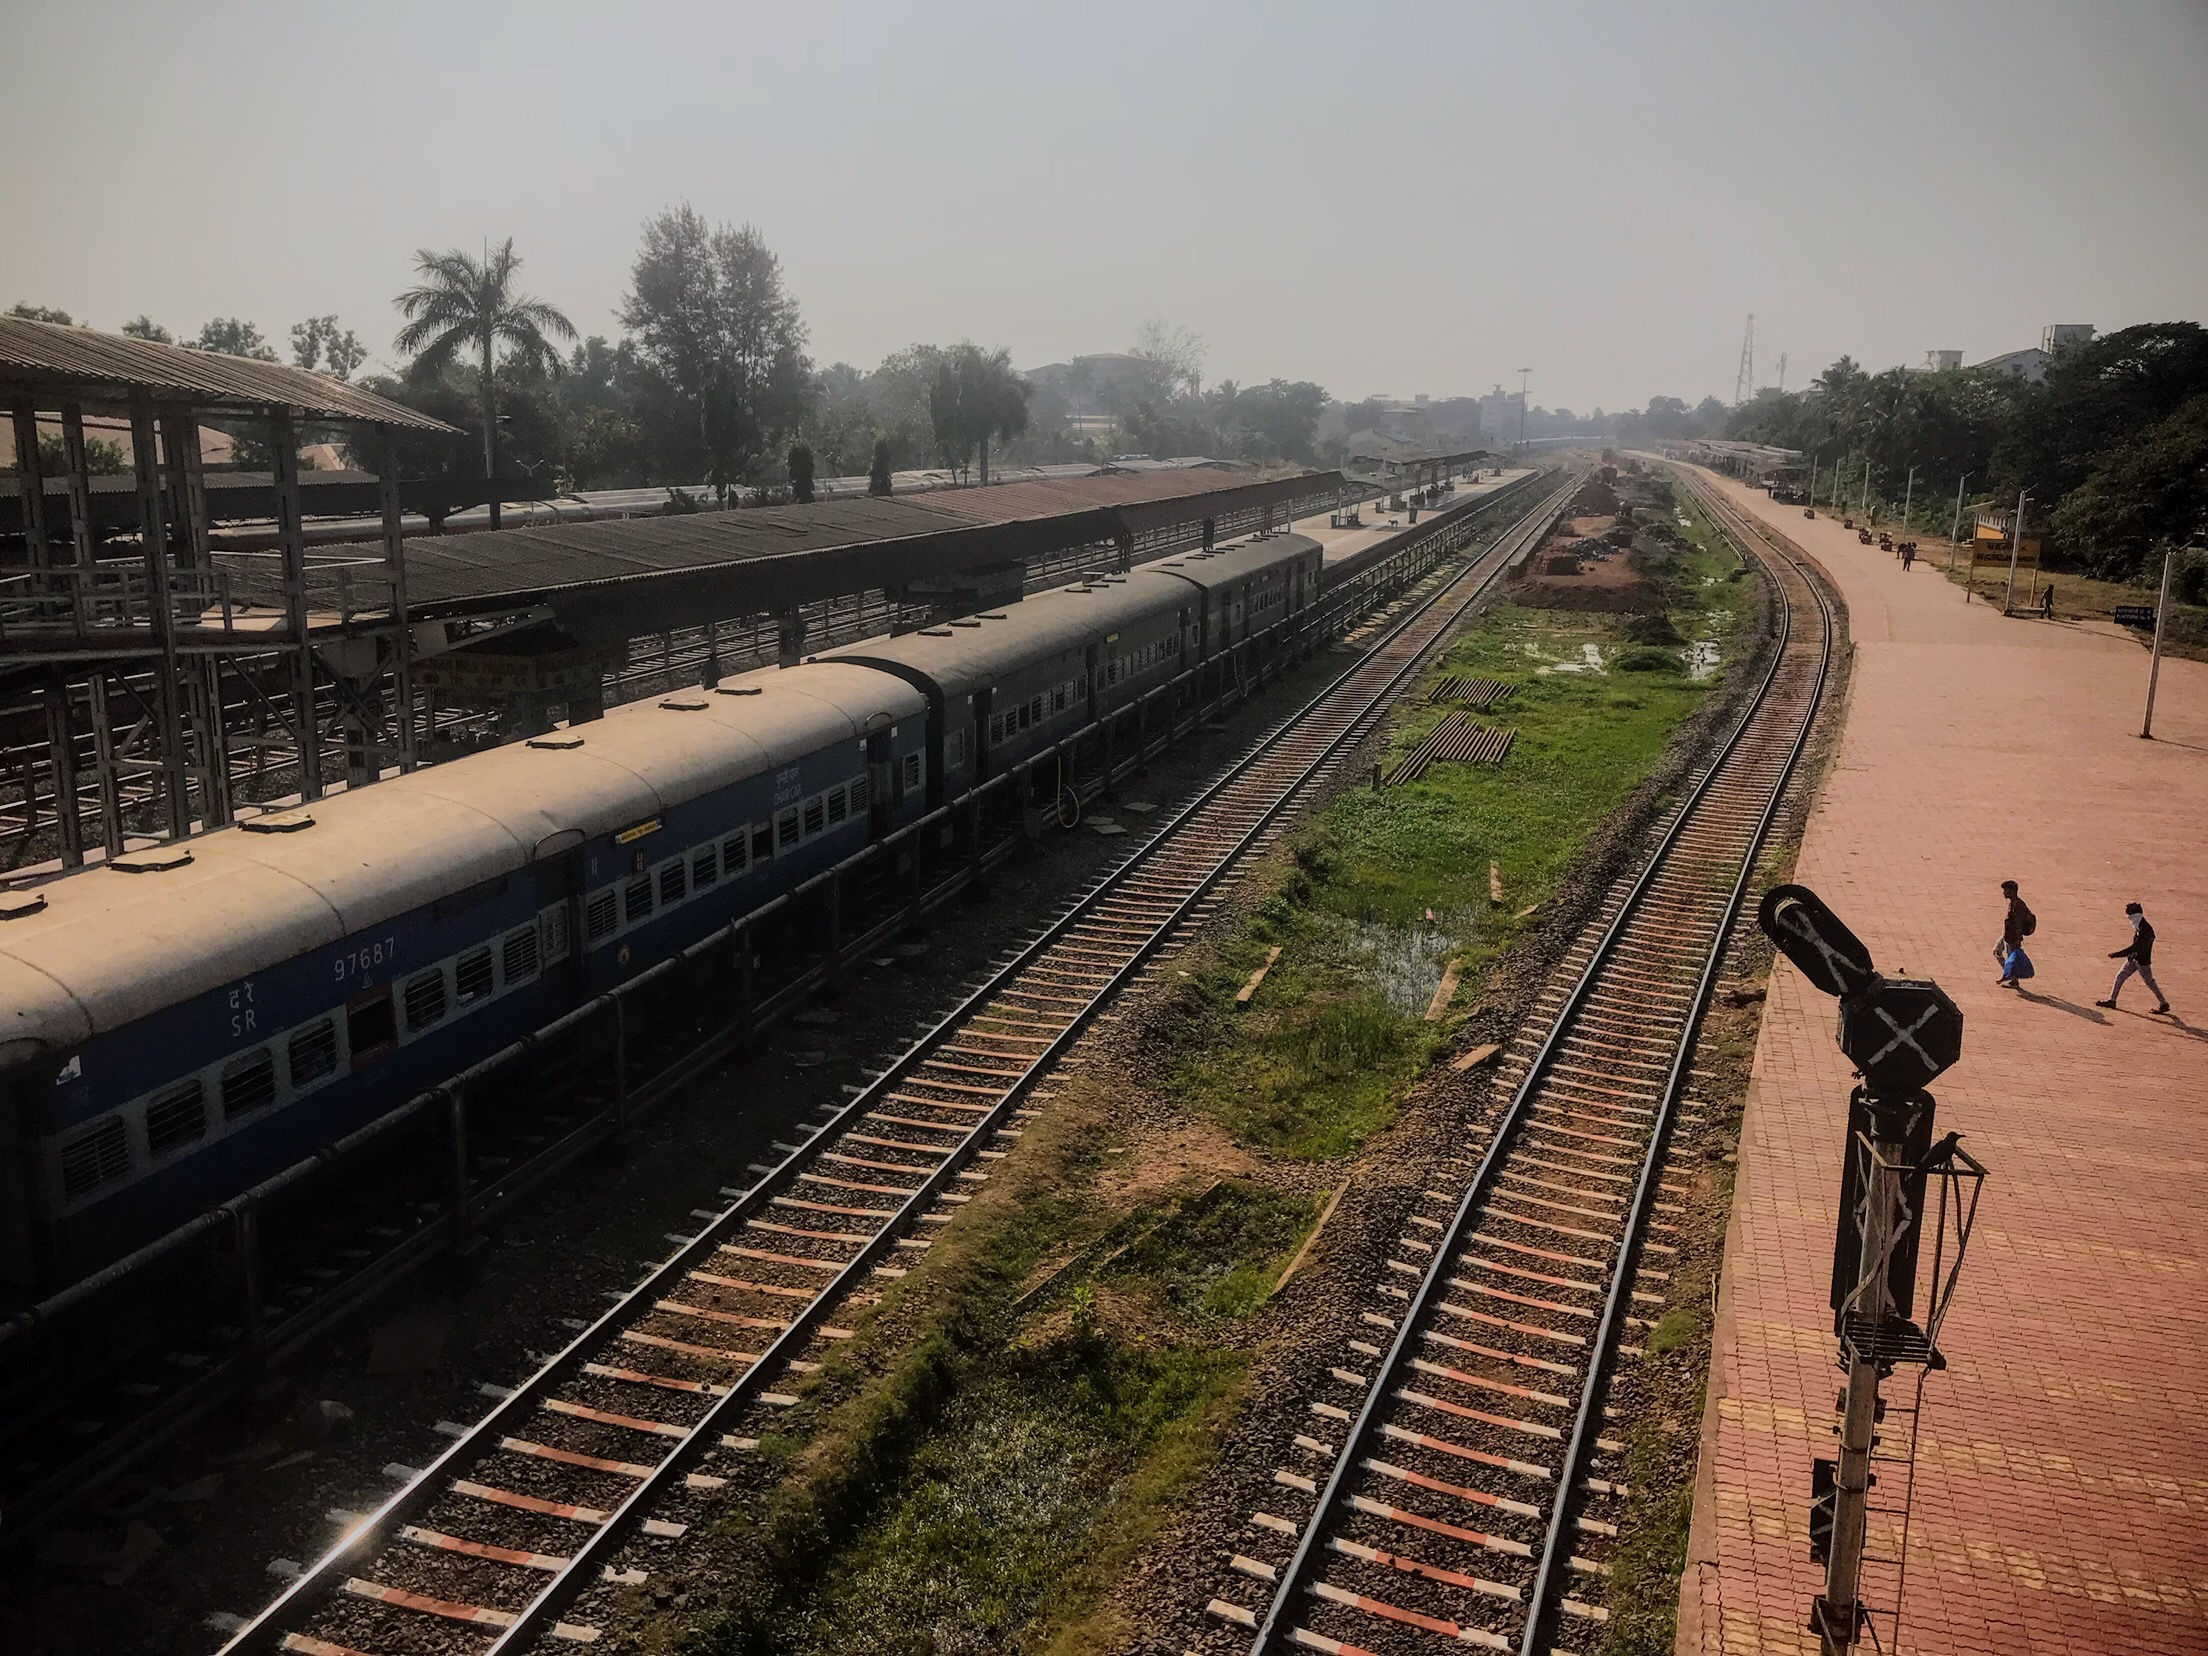 Train station in India